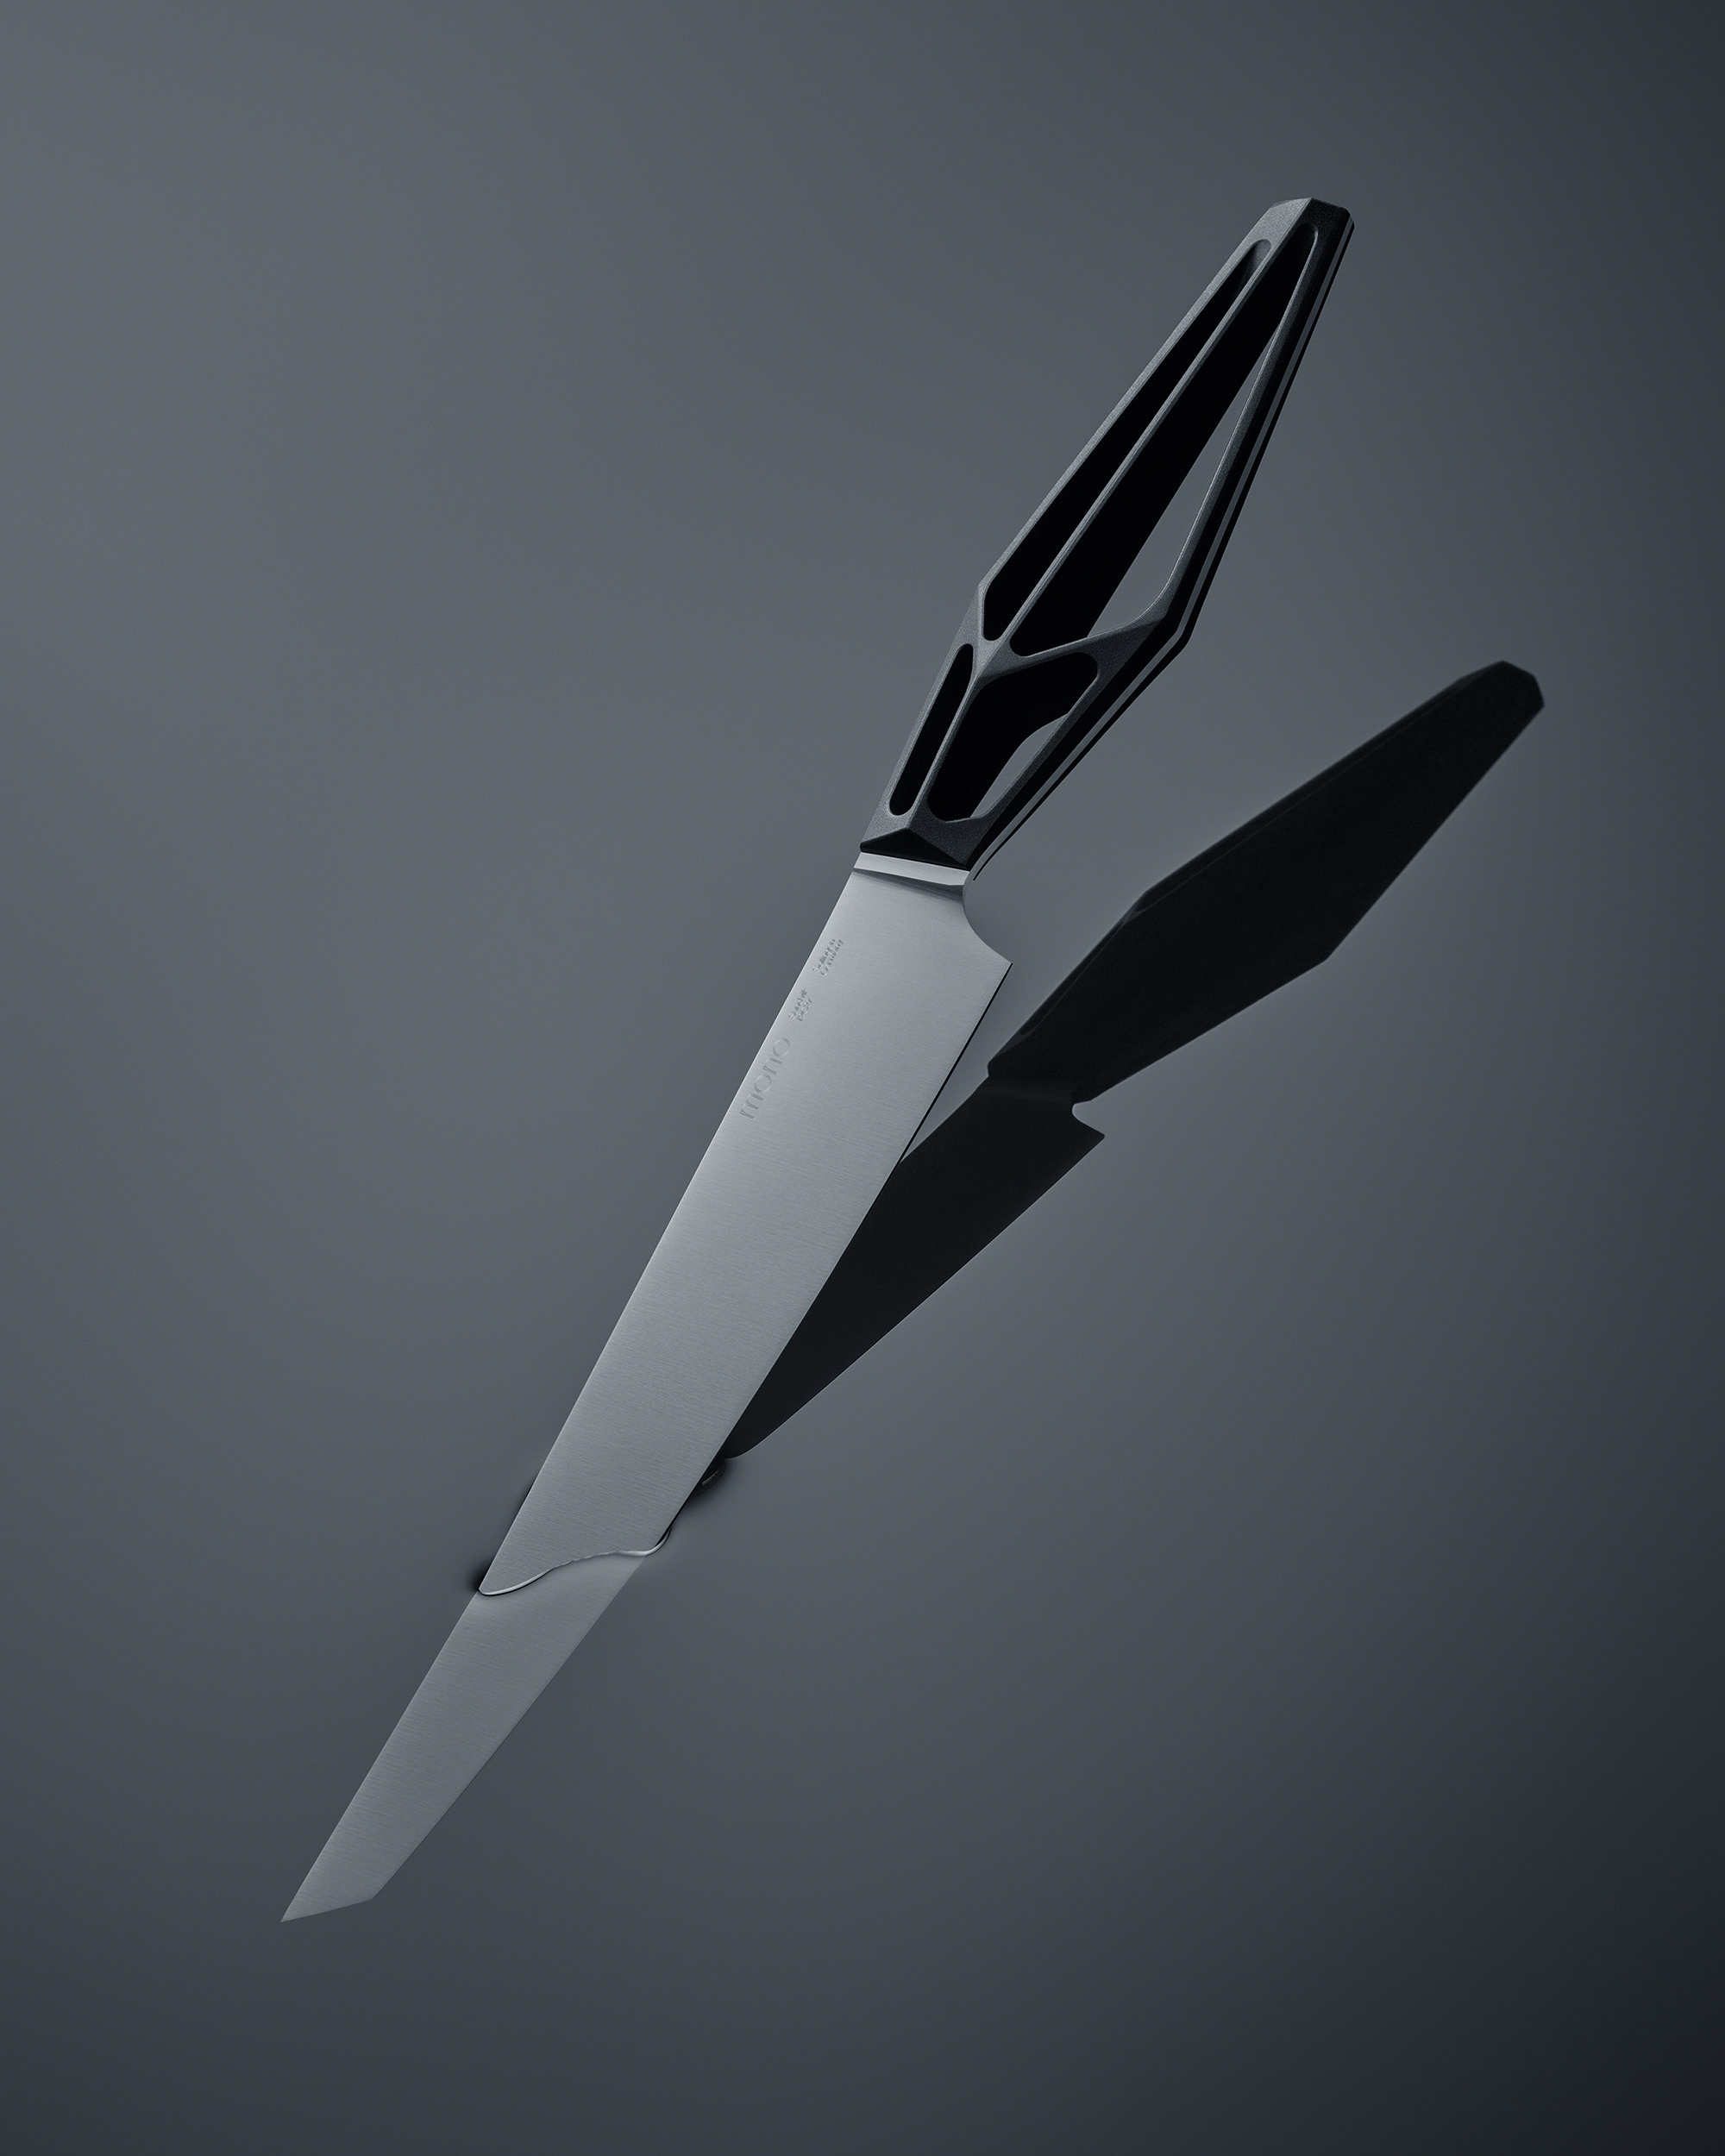 Mono SK59 Küchenmesser Cooking knife Credits Hawlin Services 03